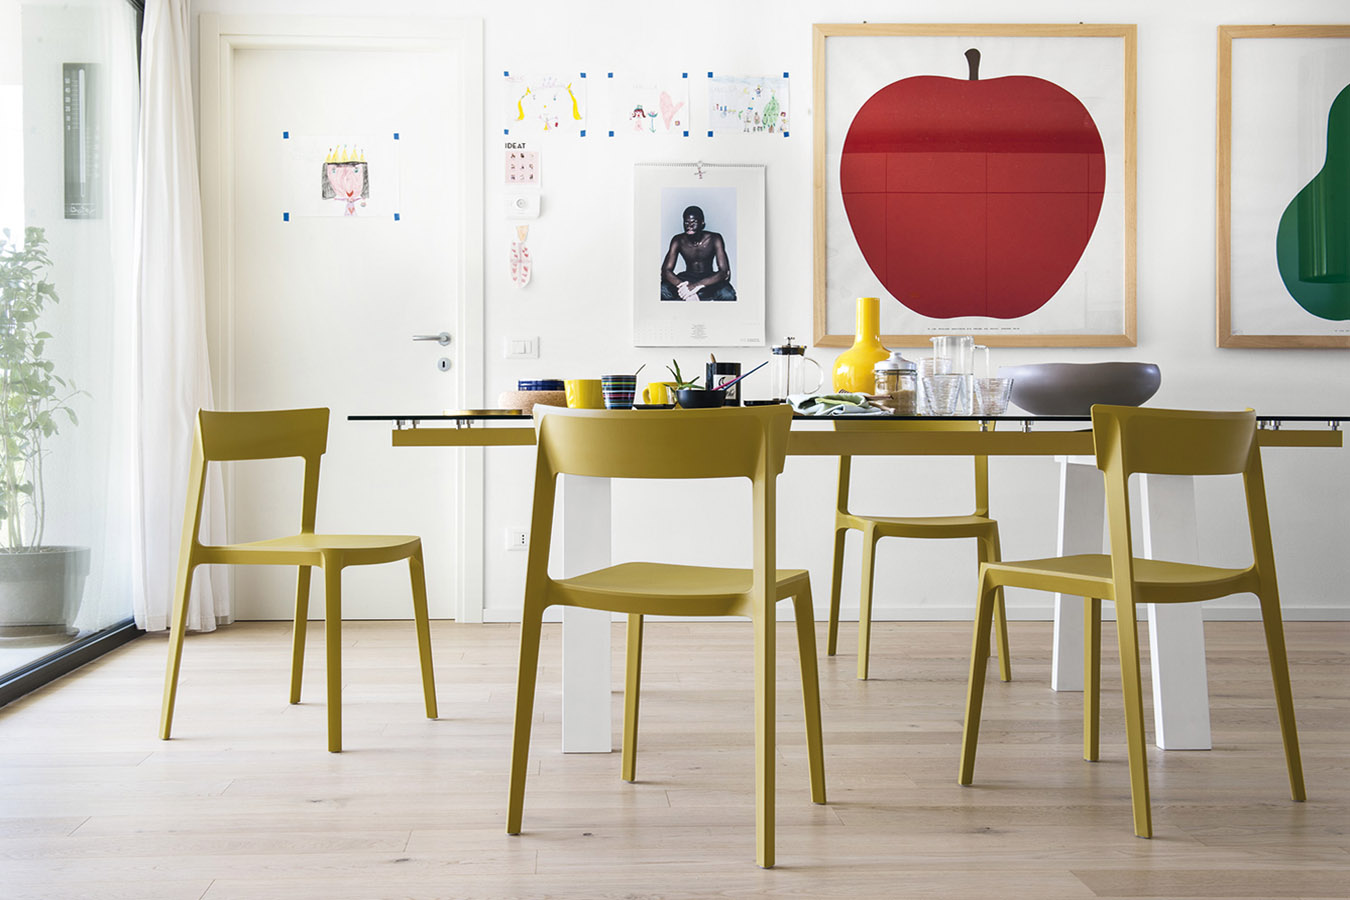 Sedia Impilabile Skin  Calligaris  Pozzoli Living  Moving